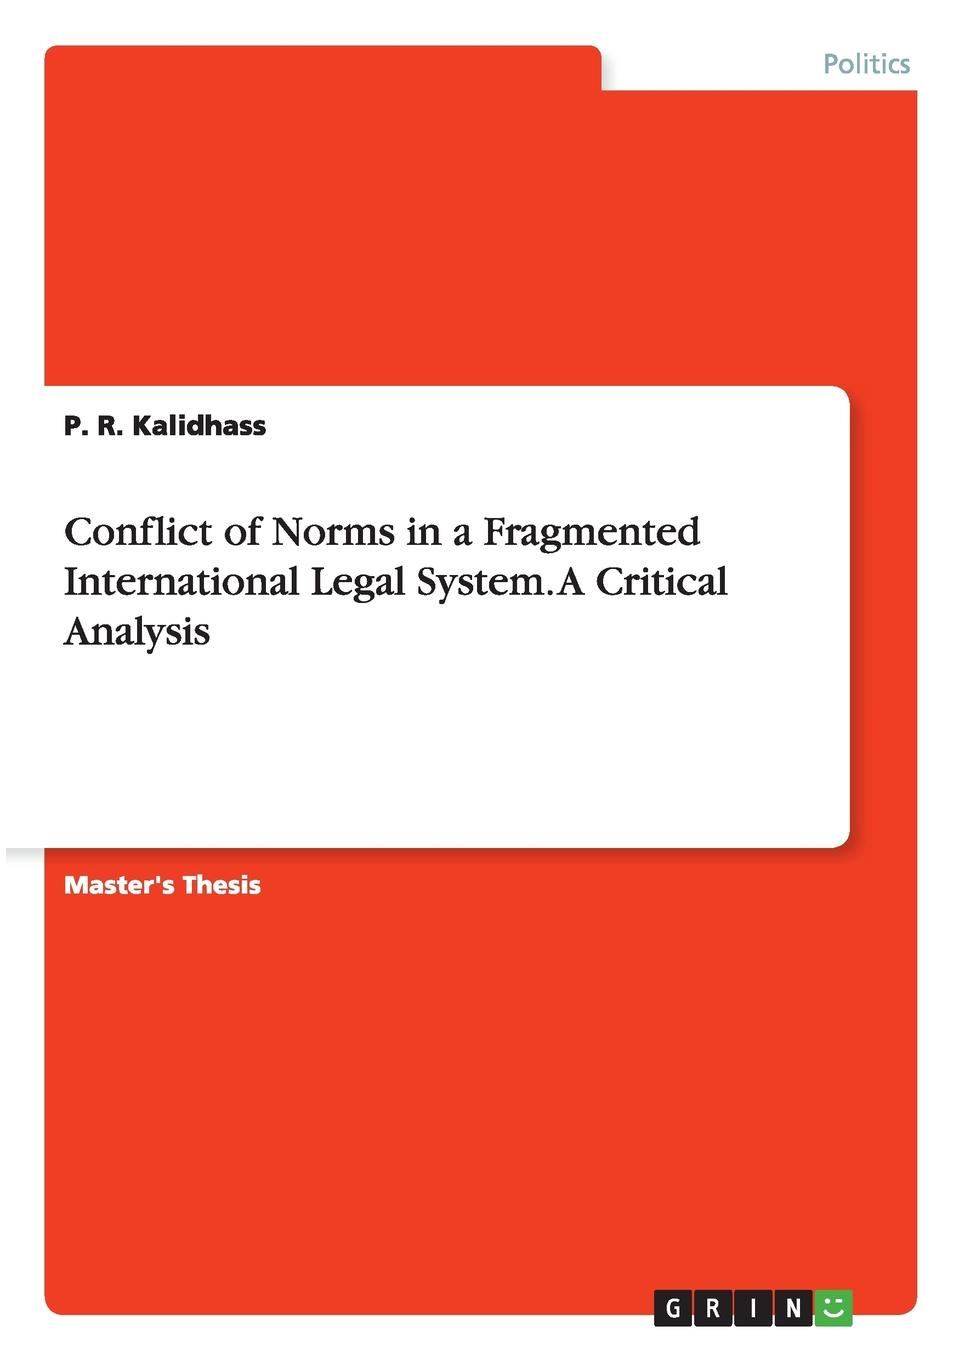 P. R. Kalidhass Conflict of Norms in a Fragmented International Legal System. A Critical Analysis local remedies in international law